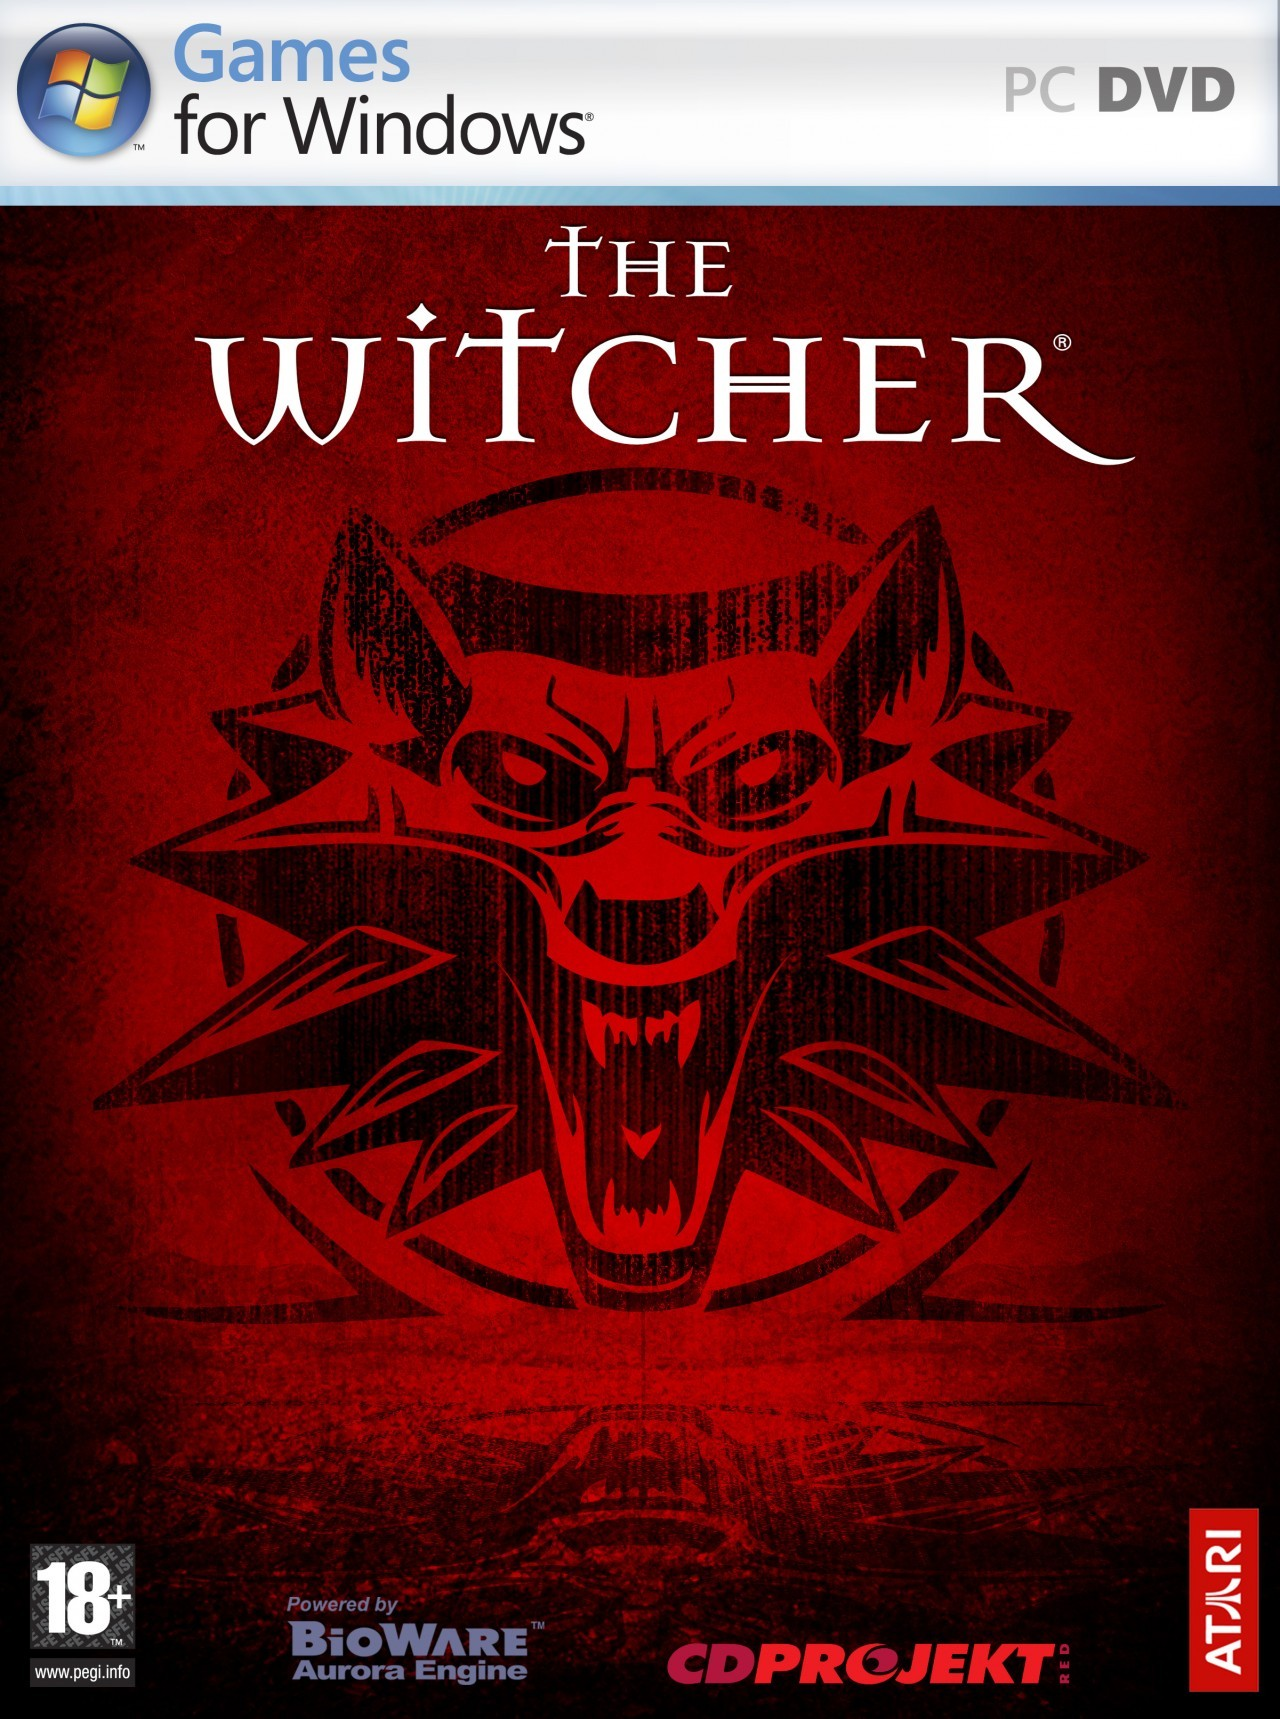 Cubierta del DVD The Witcher